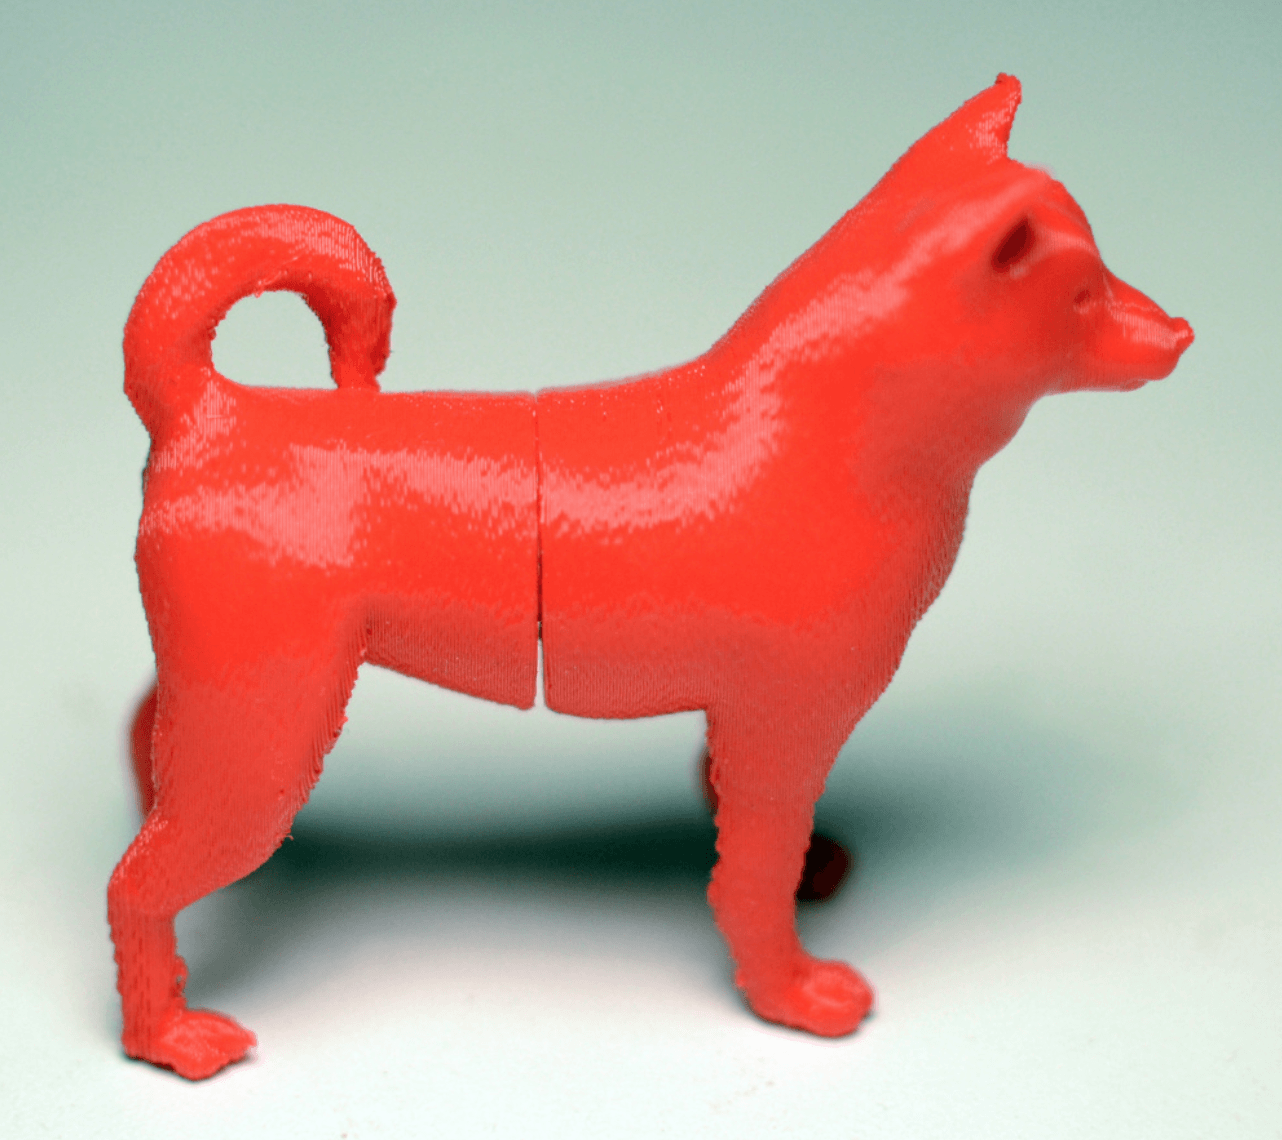 Capture d'écran 2018-03-29 à 11.56.48.png Download free STL file Mixable dog models - Puzzle game • Design to 3D print, simiboy